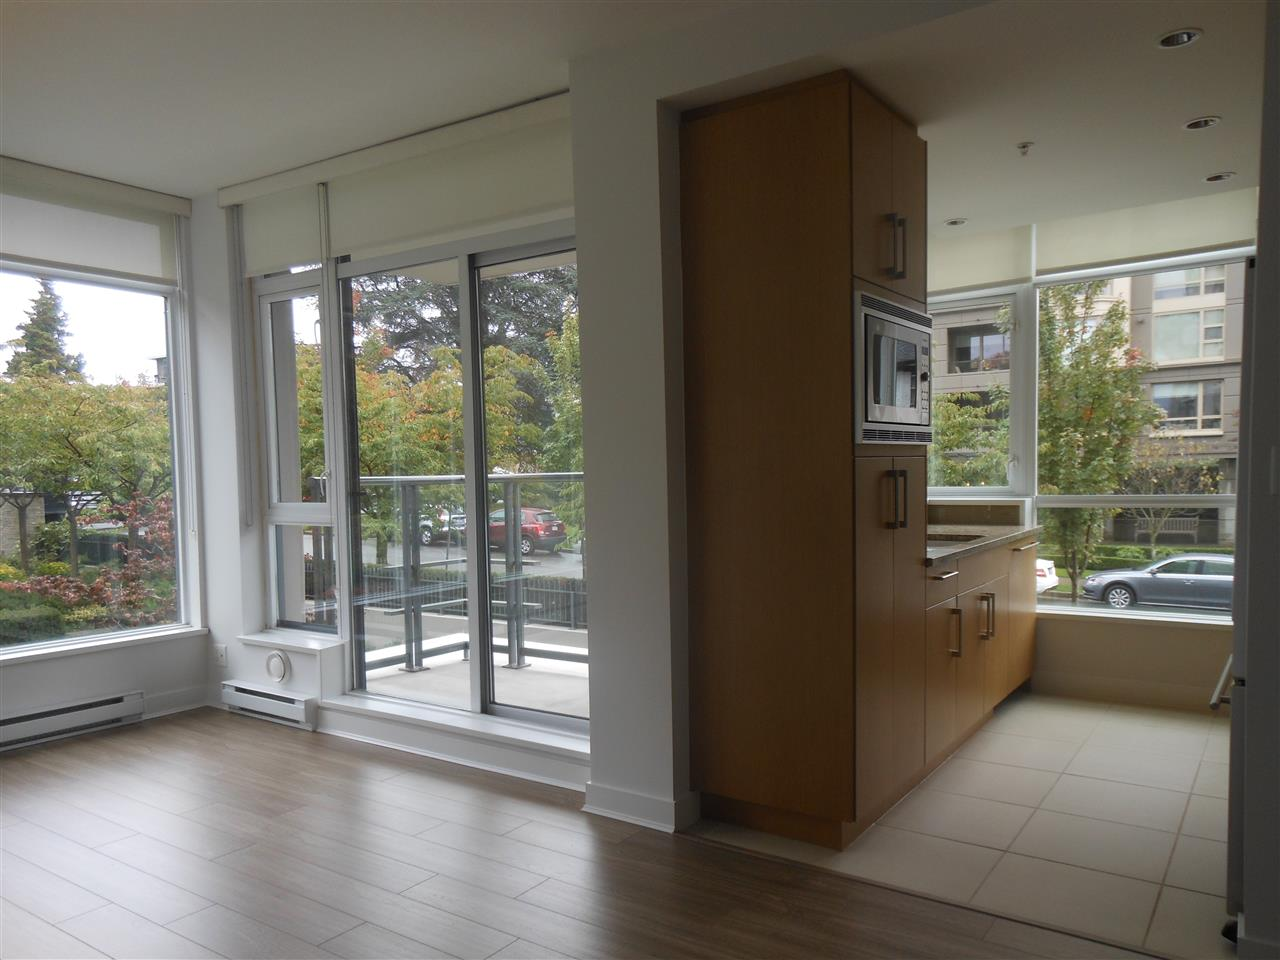 "Photo 5: 207 1333 W 11TH Avenue in Vancouver: Fairview VW Condo for sale in ""SAKURA"" (Vancouver West)  : MLS® # R2006799"